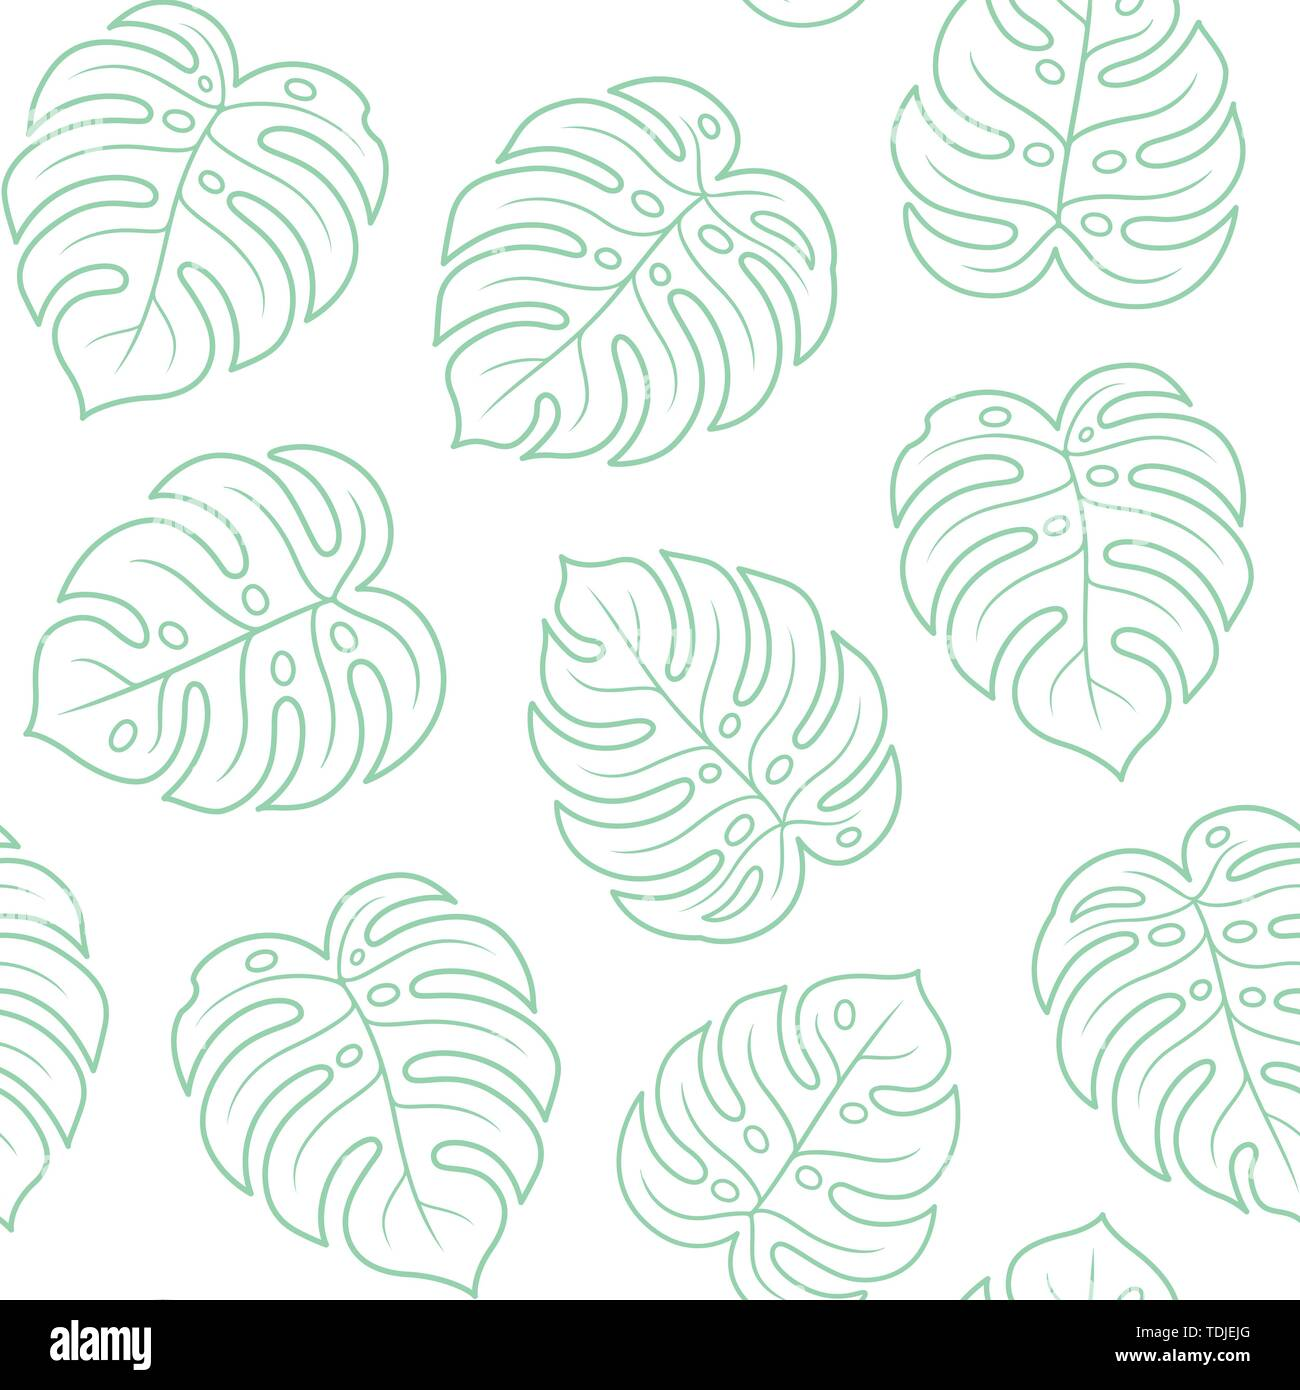 Monstera Leaf Seamless Pattern Light Green Outline On White Background Simple Hand Drawn Exotic Plant Leaves Tropical Summer Texture Vector Illustr Stock Vector Image Art Alamy You can also click related recommendations to view more background images in our huge database. https www alamy com monstera leaf seamless pattern light green outline on white background simple hand drawn exotic plant leaves tropical summer texture vector illustr image249342312 html